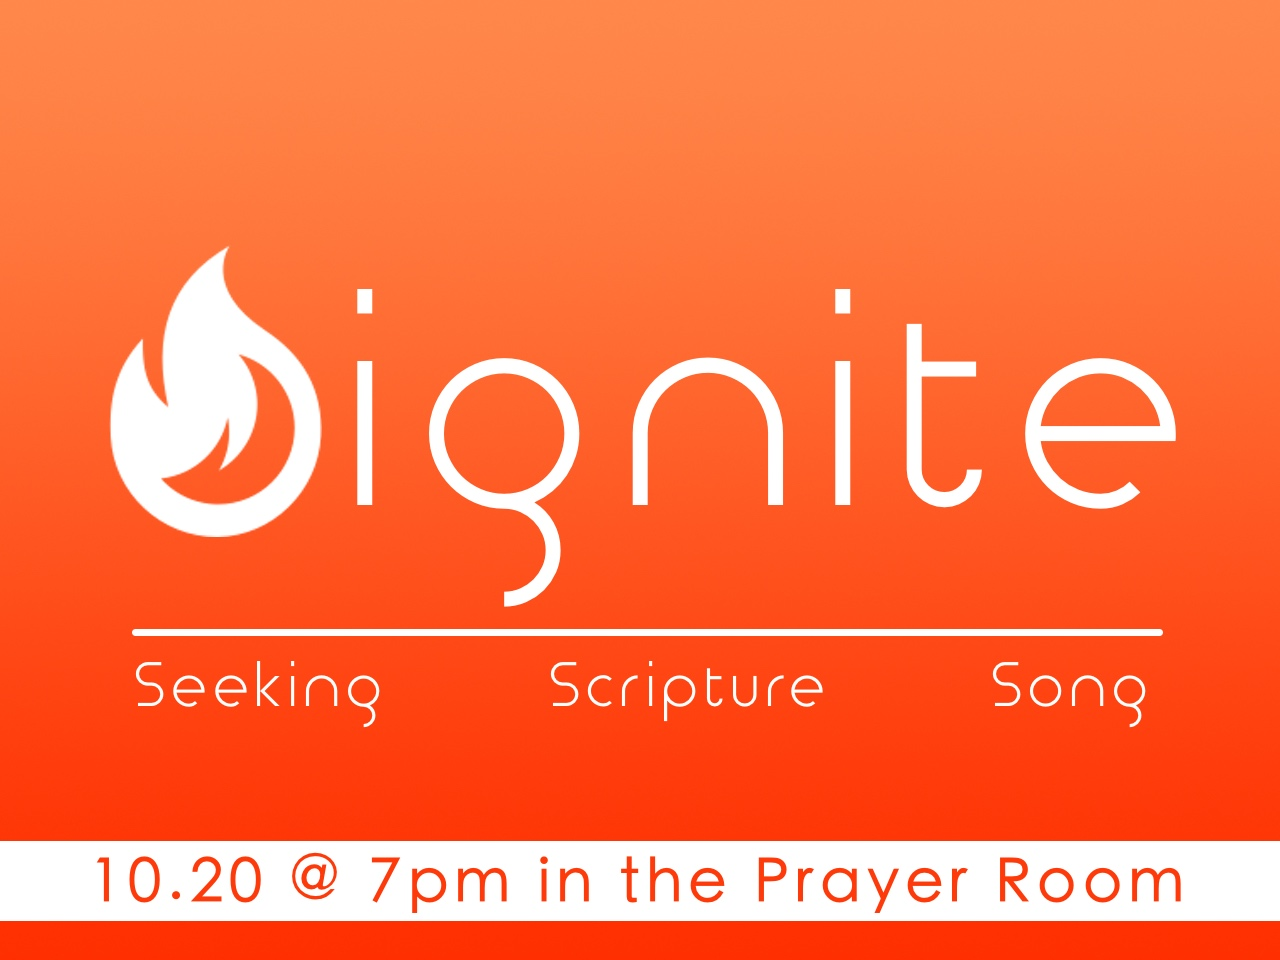 Ignite is a time of prayer, scripture, and song directed by whatever God is putting on the hearts of those who are there. So come and bring your cares, your concerns, your praises, and your desire to draw closer to God with others who long to do the same. One spark can start an incredible movement of worship. Come and join in this special even!! Ignite happens the third Thursday of every month.